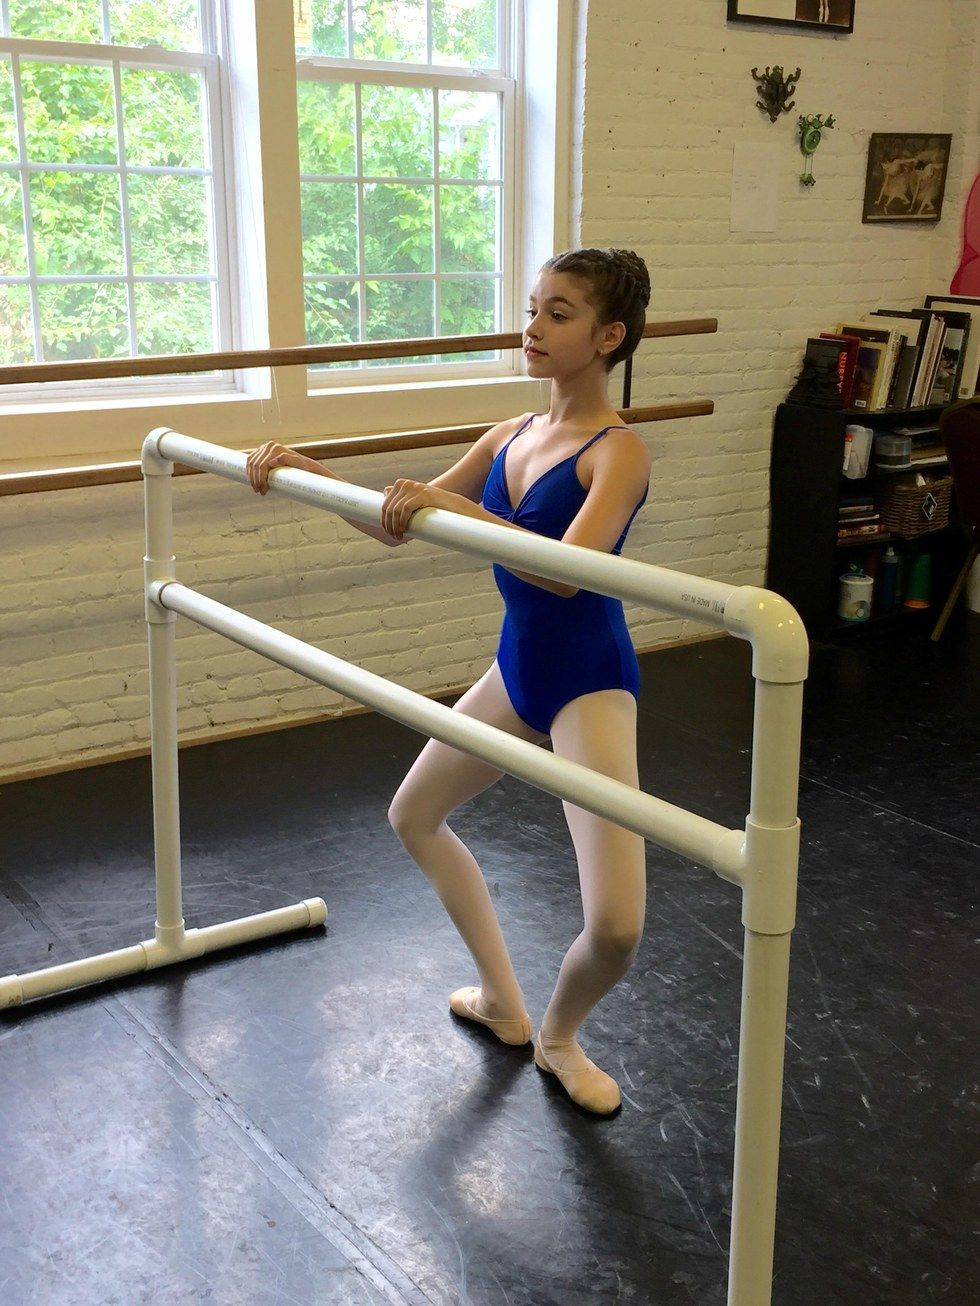 Most ballet teachers like to reserve the last part of